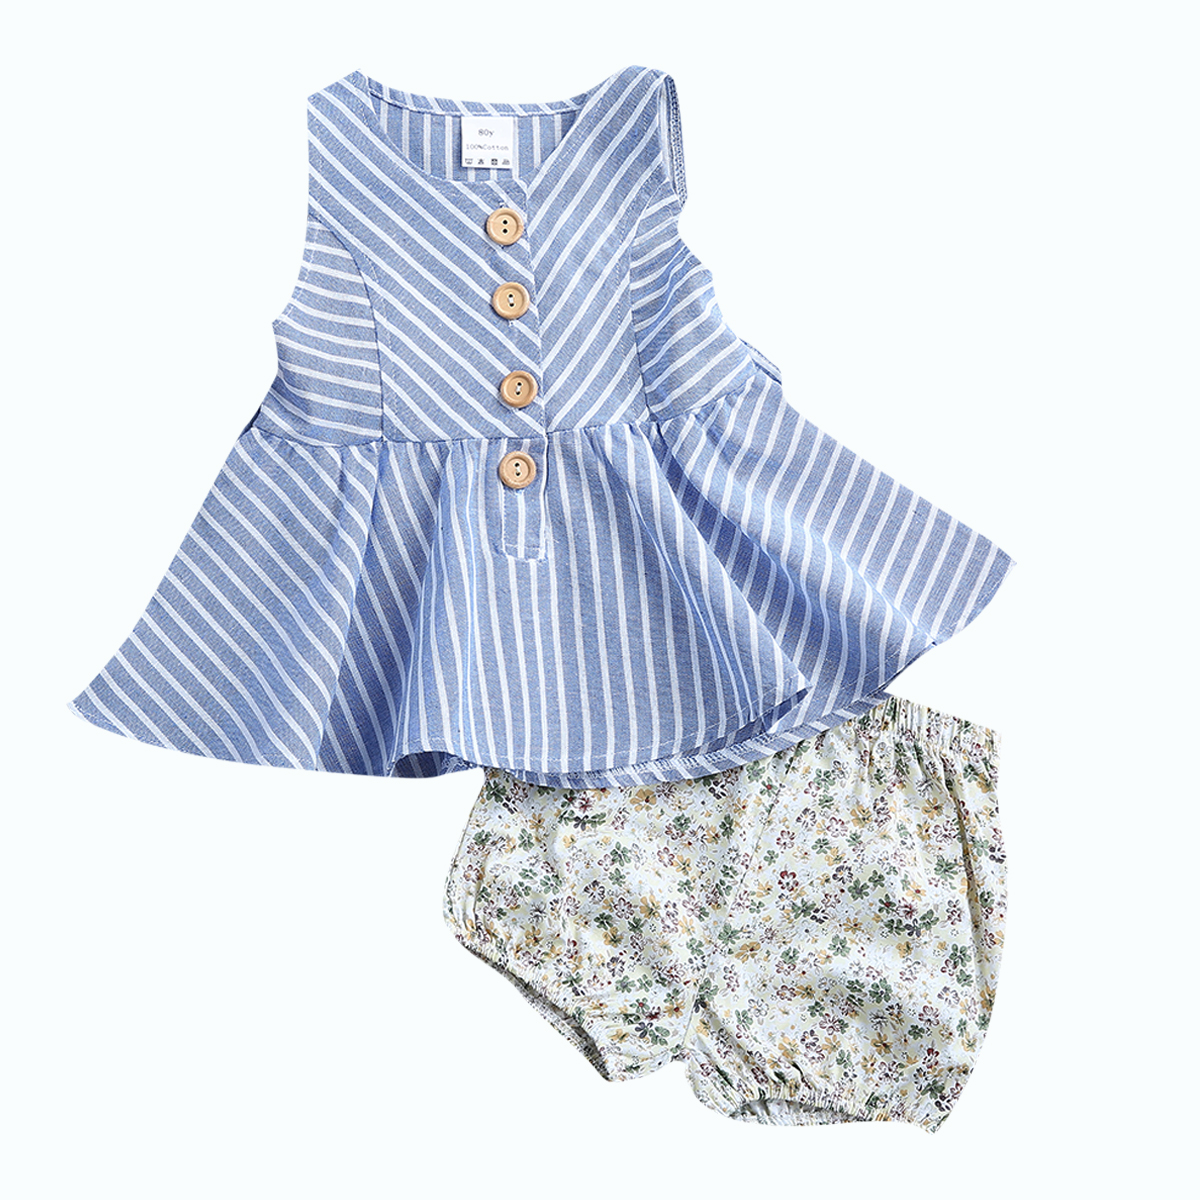 Milk Baby Clothes Store 2Pcs Striped set baby clothes Toddler Newborn Baby Girl Tops +Floral shorts Outfit set Girls Clothing